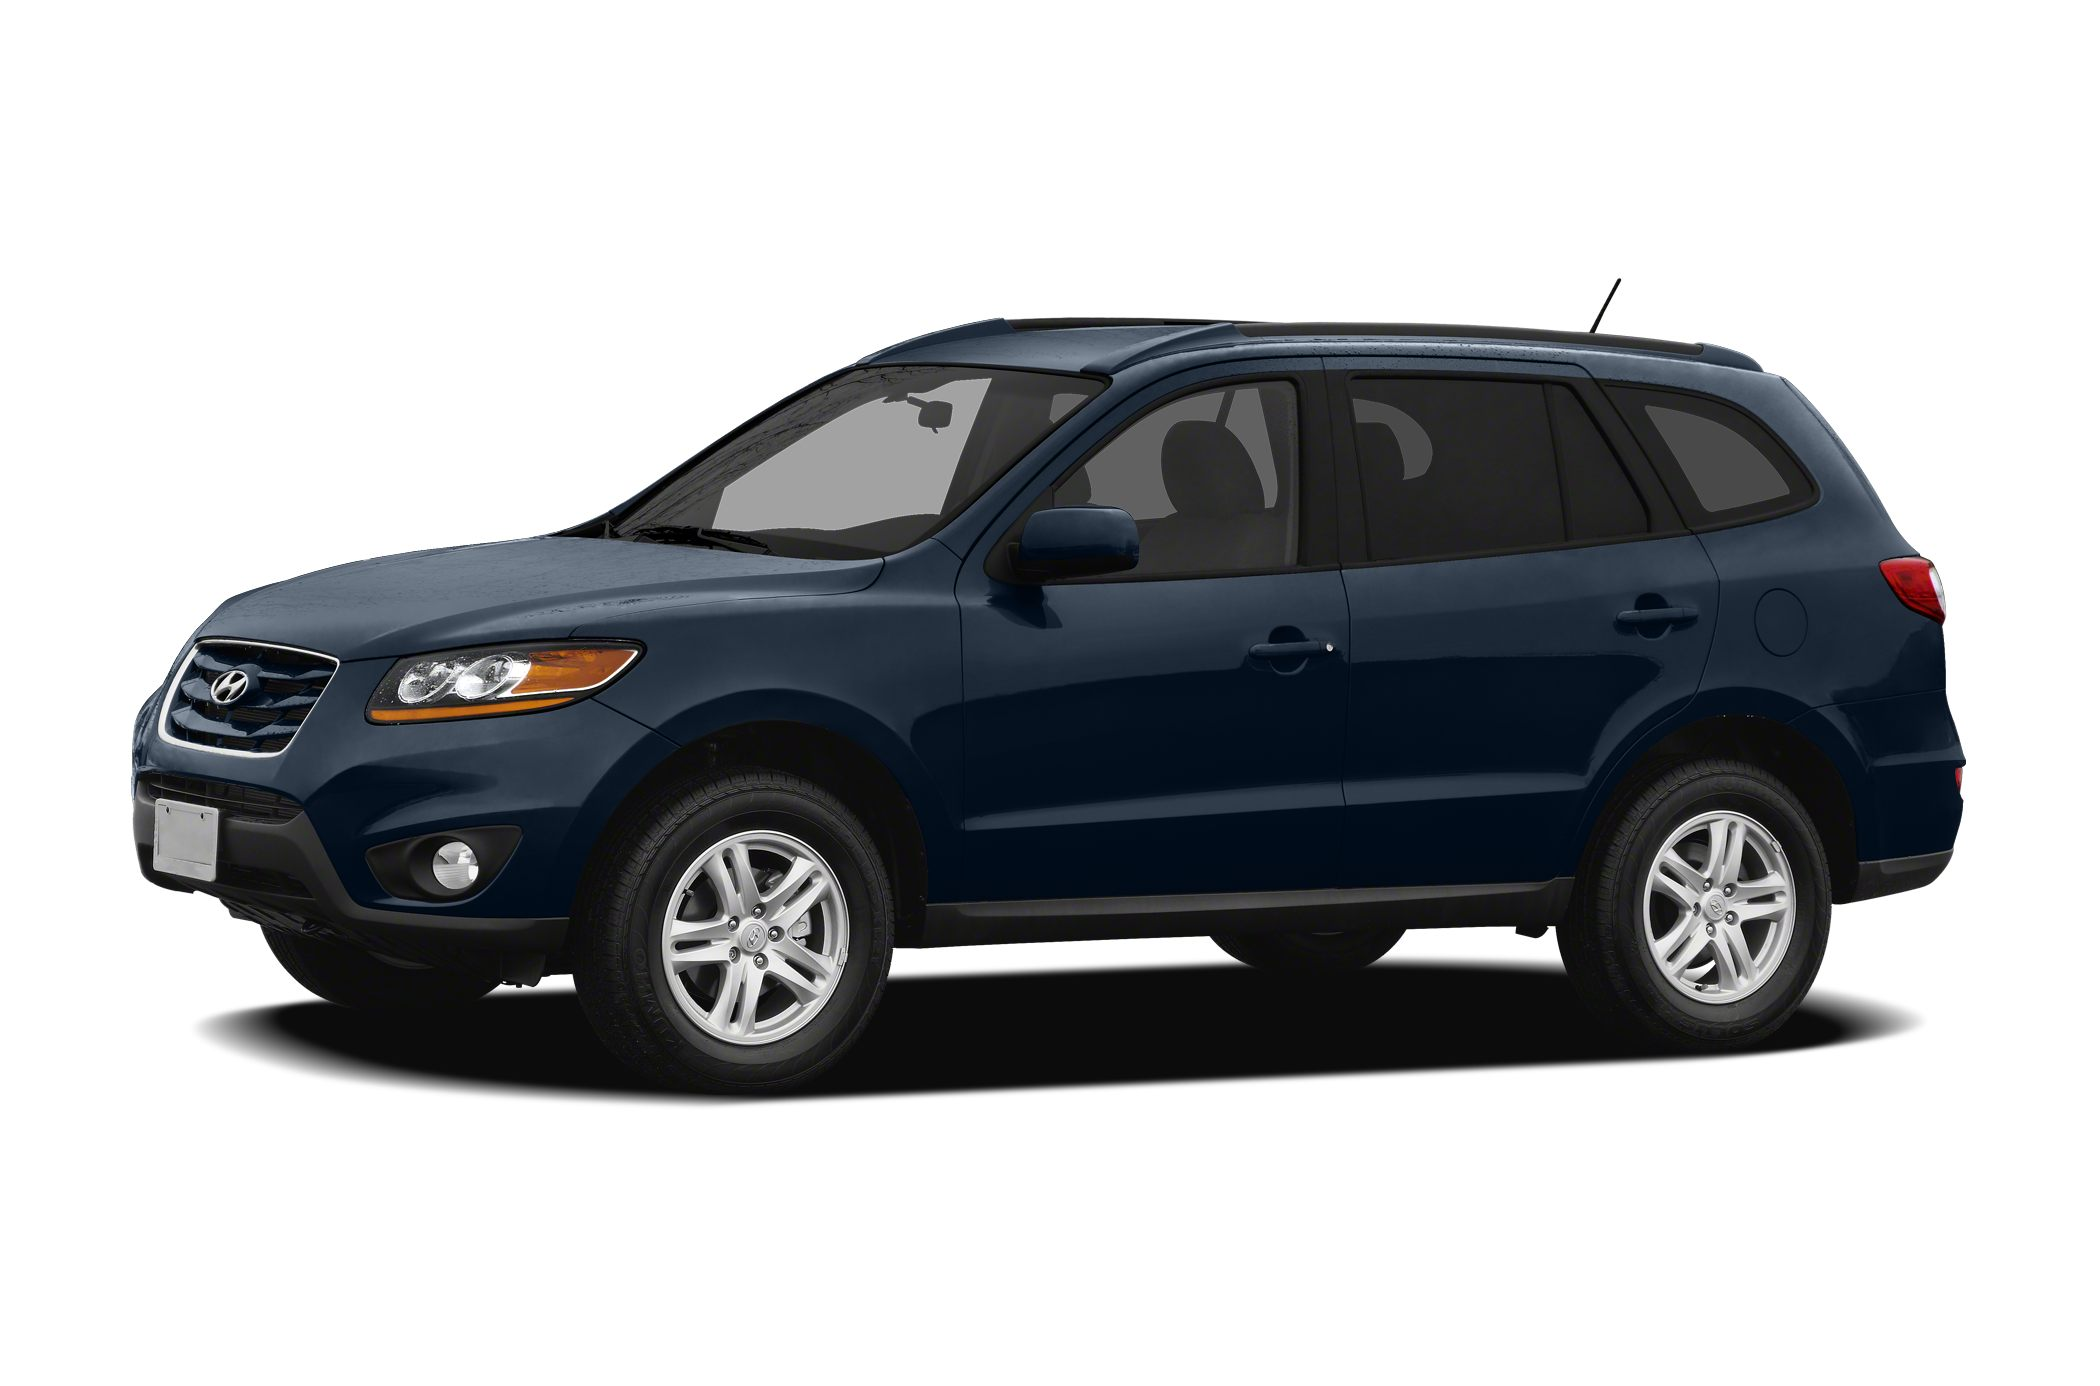 2012 Hyundai Santa Fe GLS SUV for sale in Greeley for $18,900 with 43,519 miles.